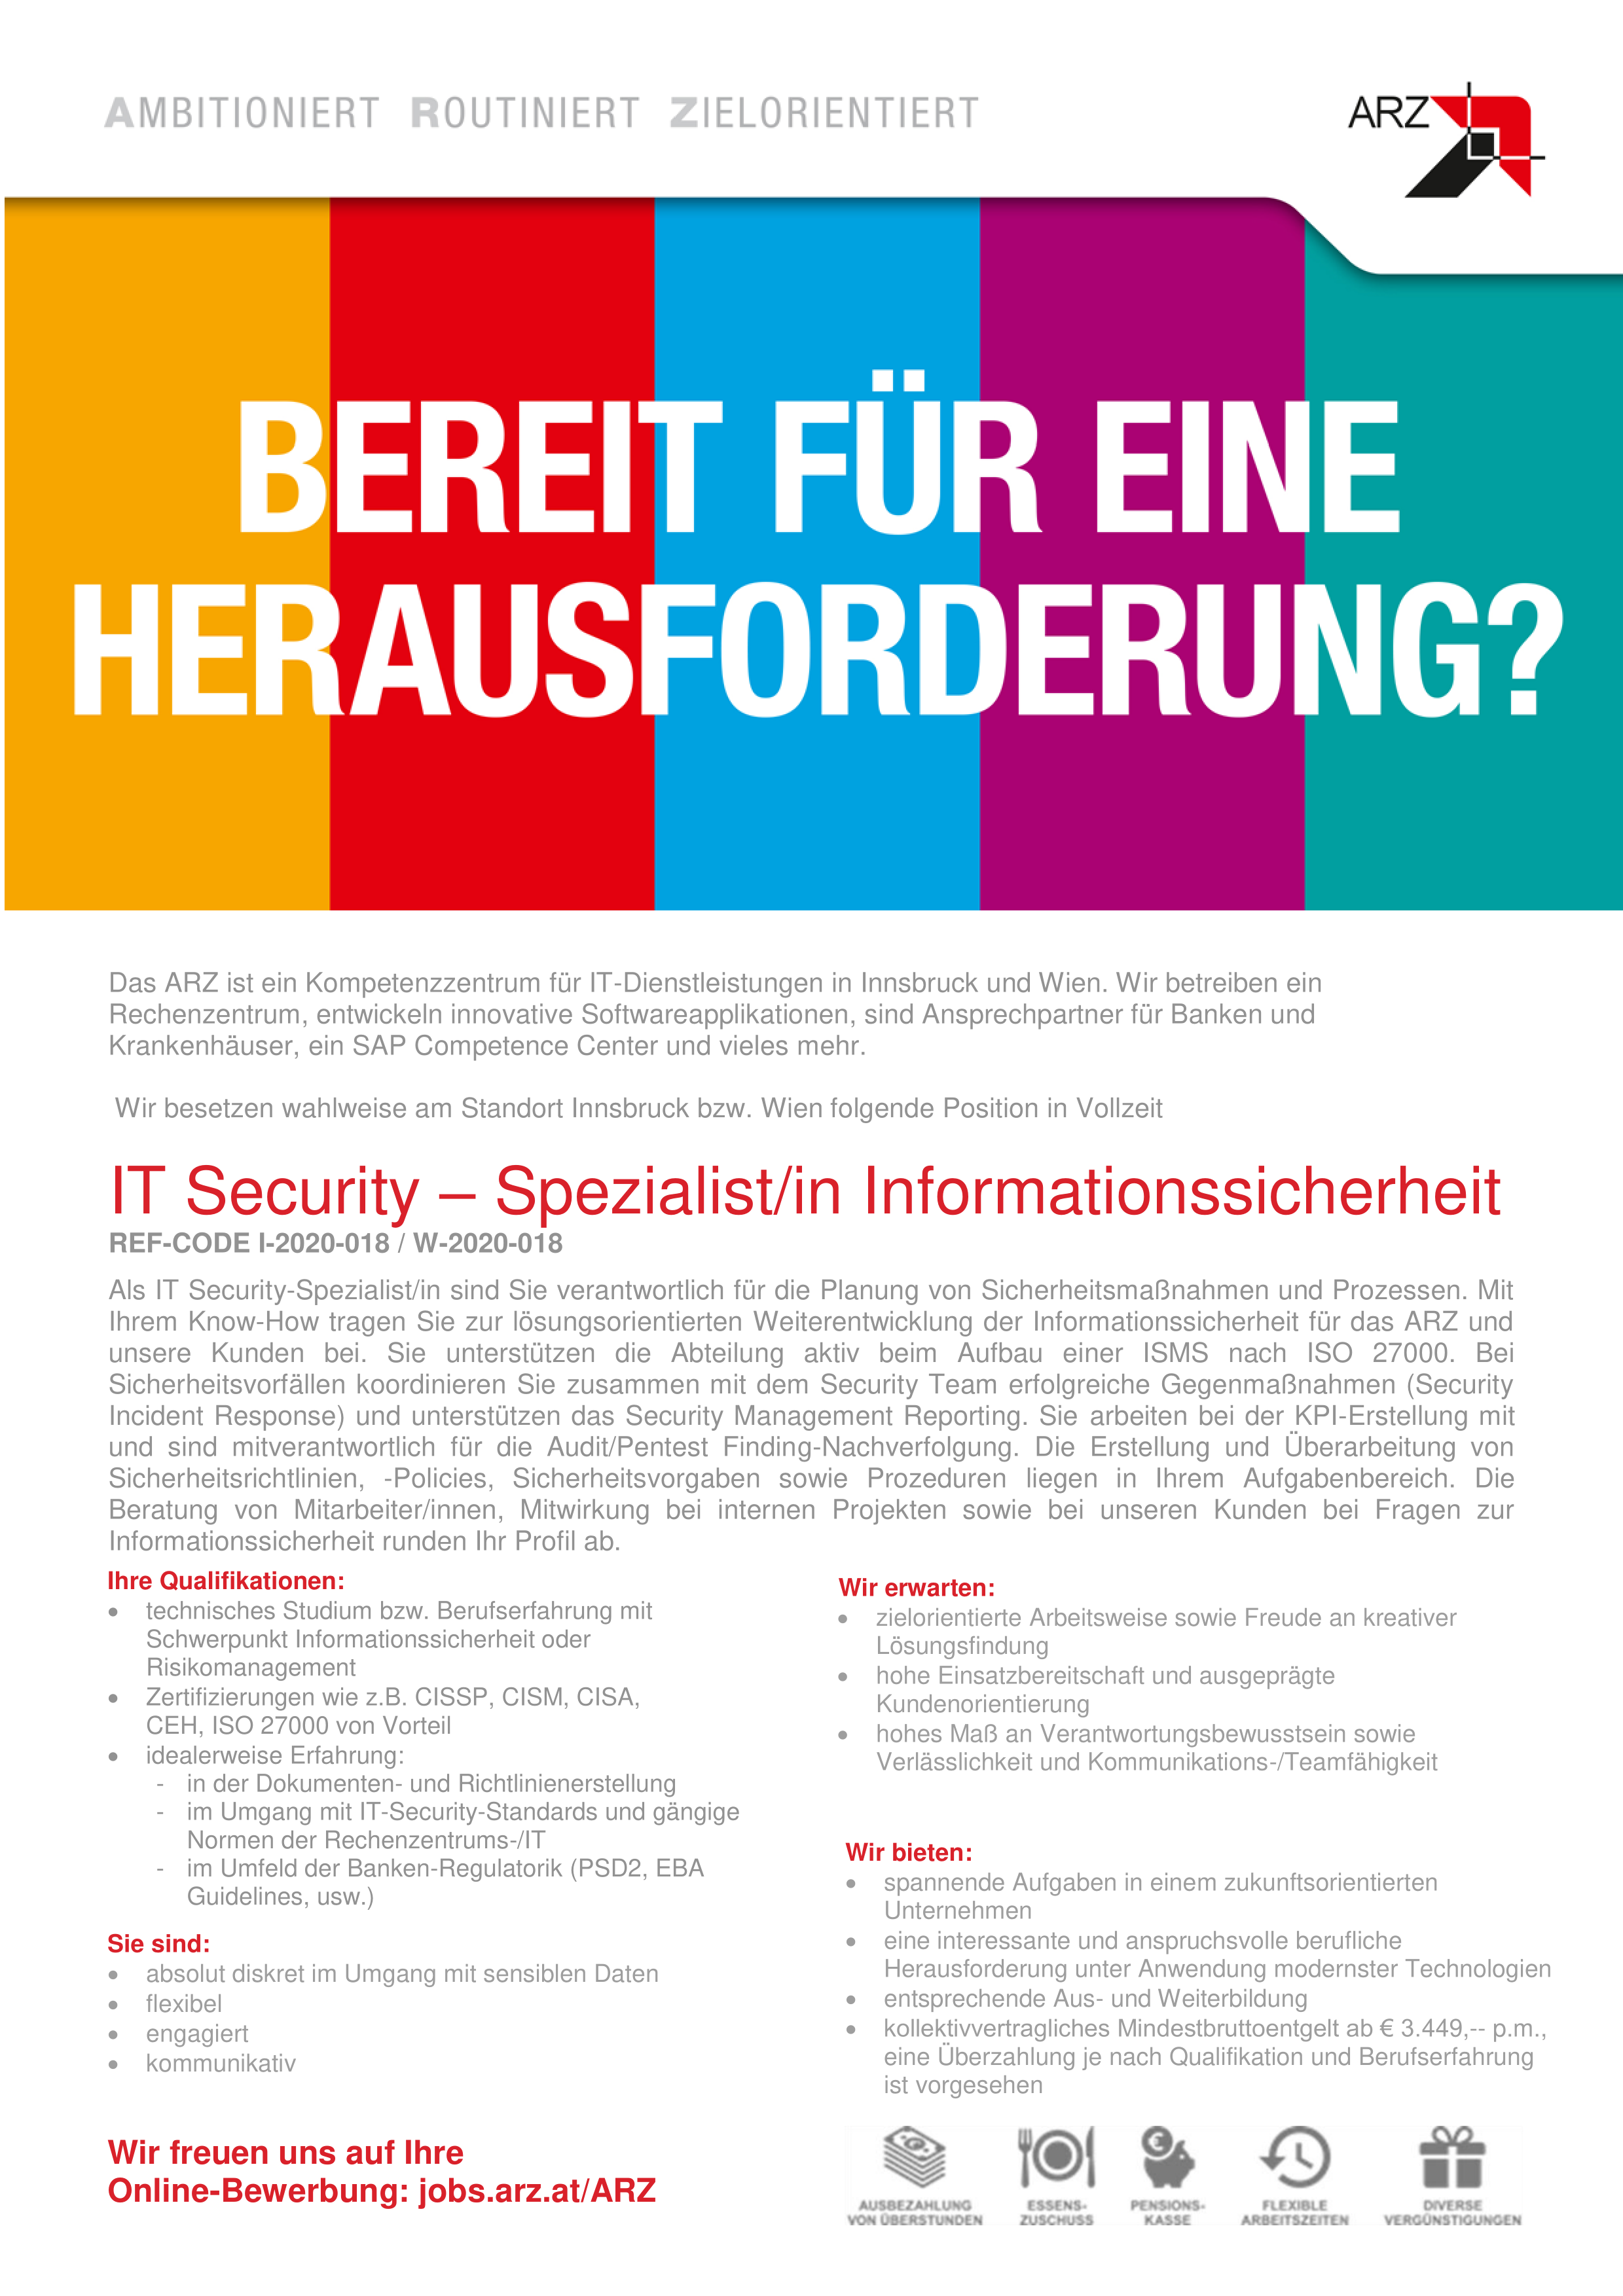 IT-Security-Spezialist/in Informationssicherheit